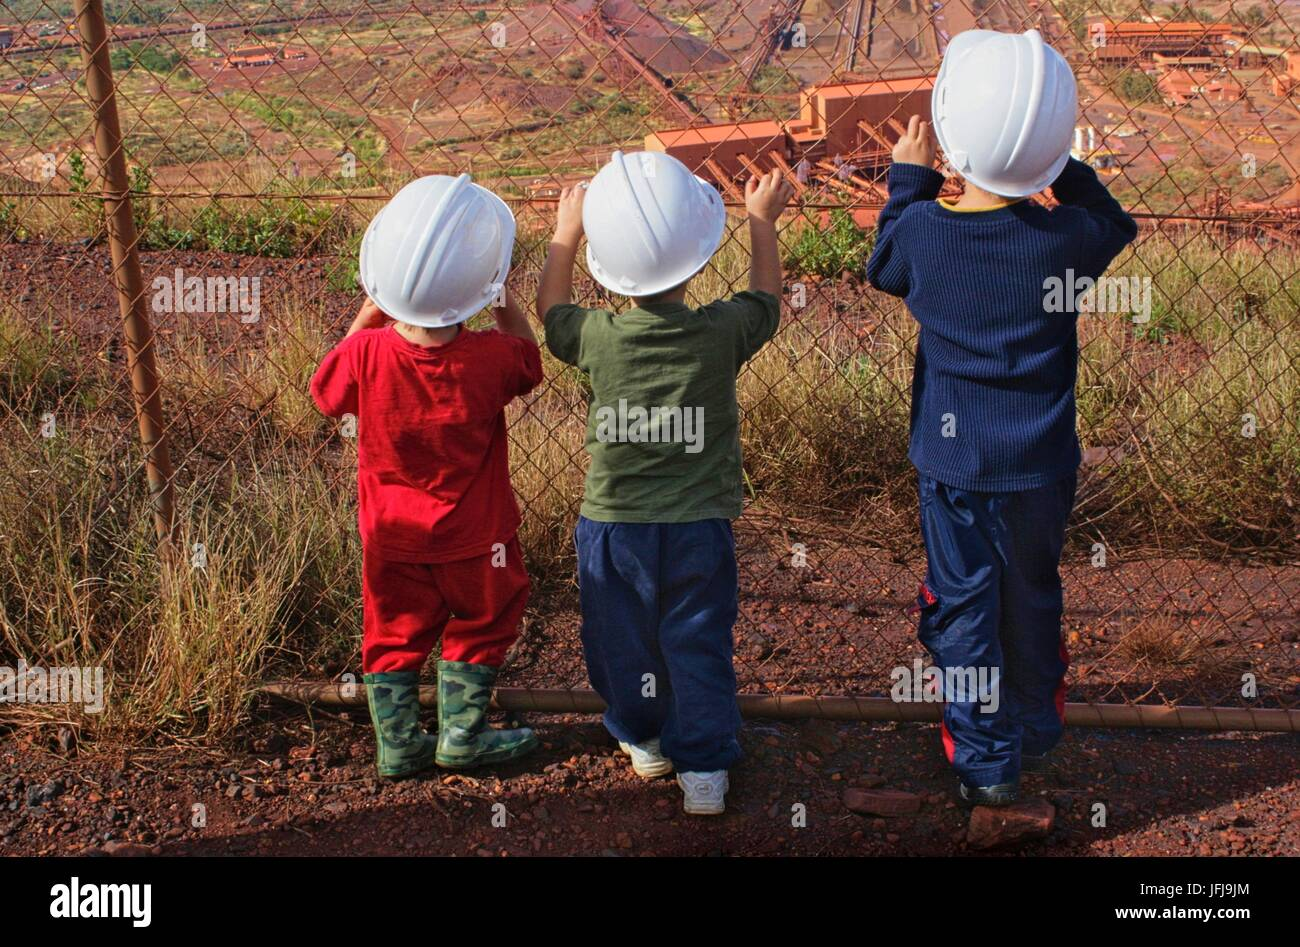 Three children wearing protective mining helmets looking